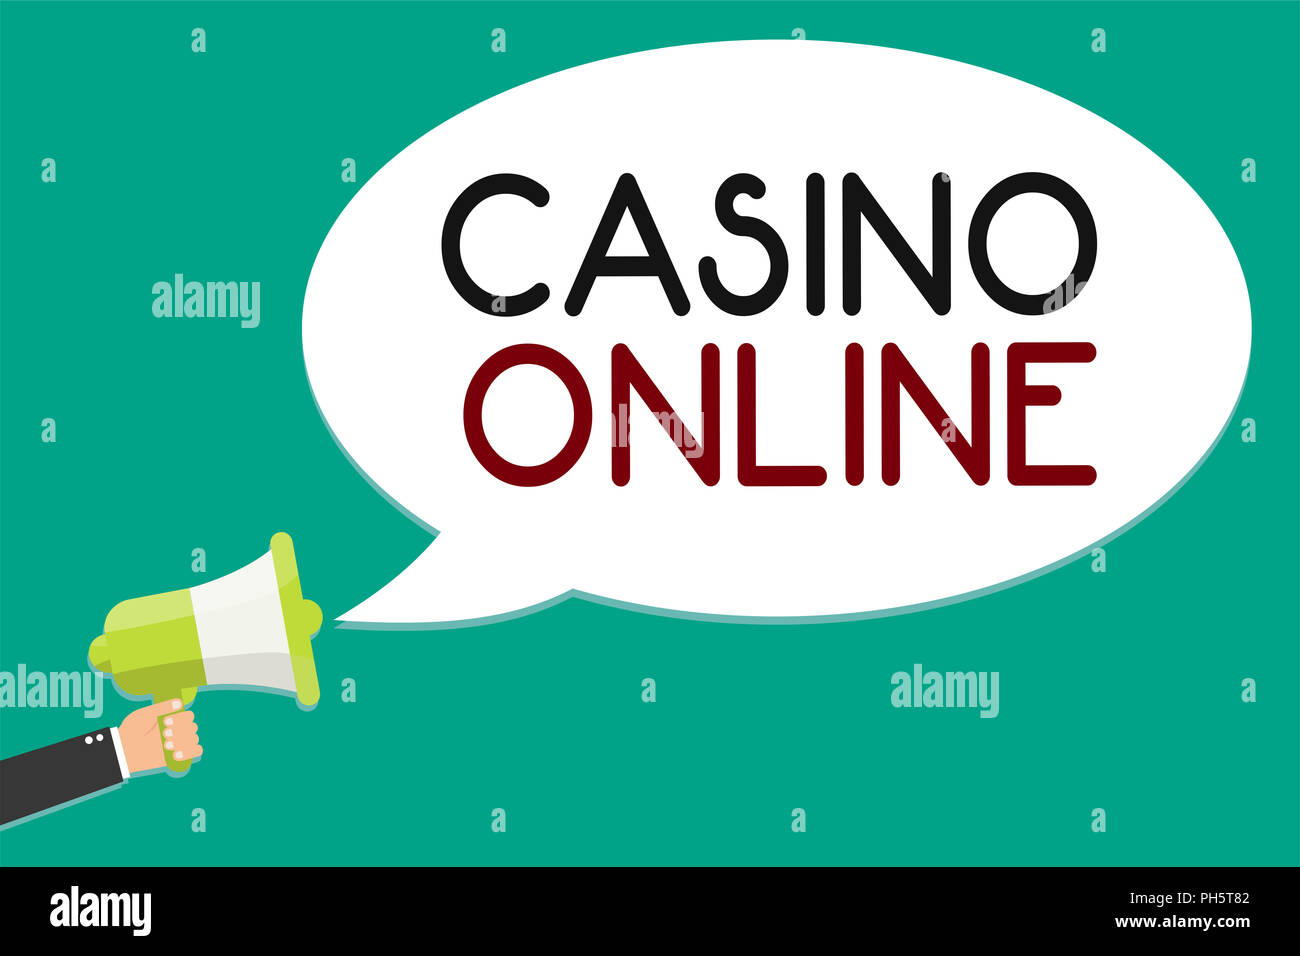 Handwriting Text Writing Casino Online Concept Meaning Computer Poker Game Gamble Royal Bet Lotto High Stakes Man Holding Megaphone Loudspeaker Speec Stock Photo Alamy